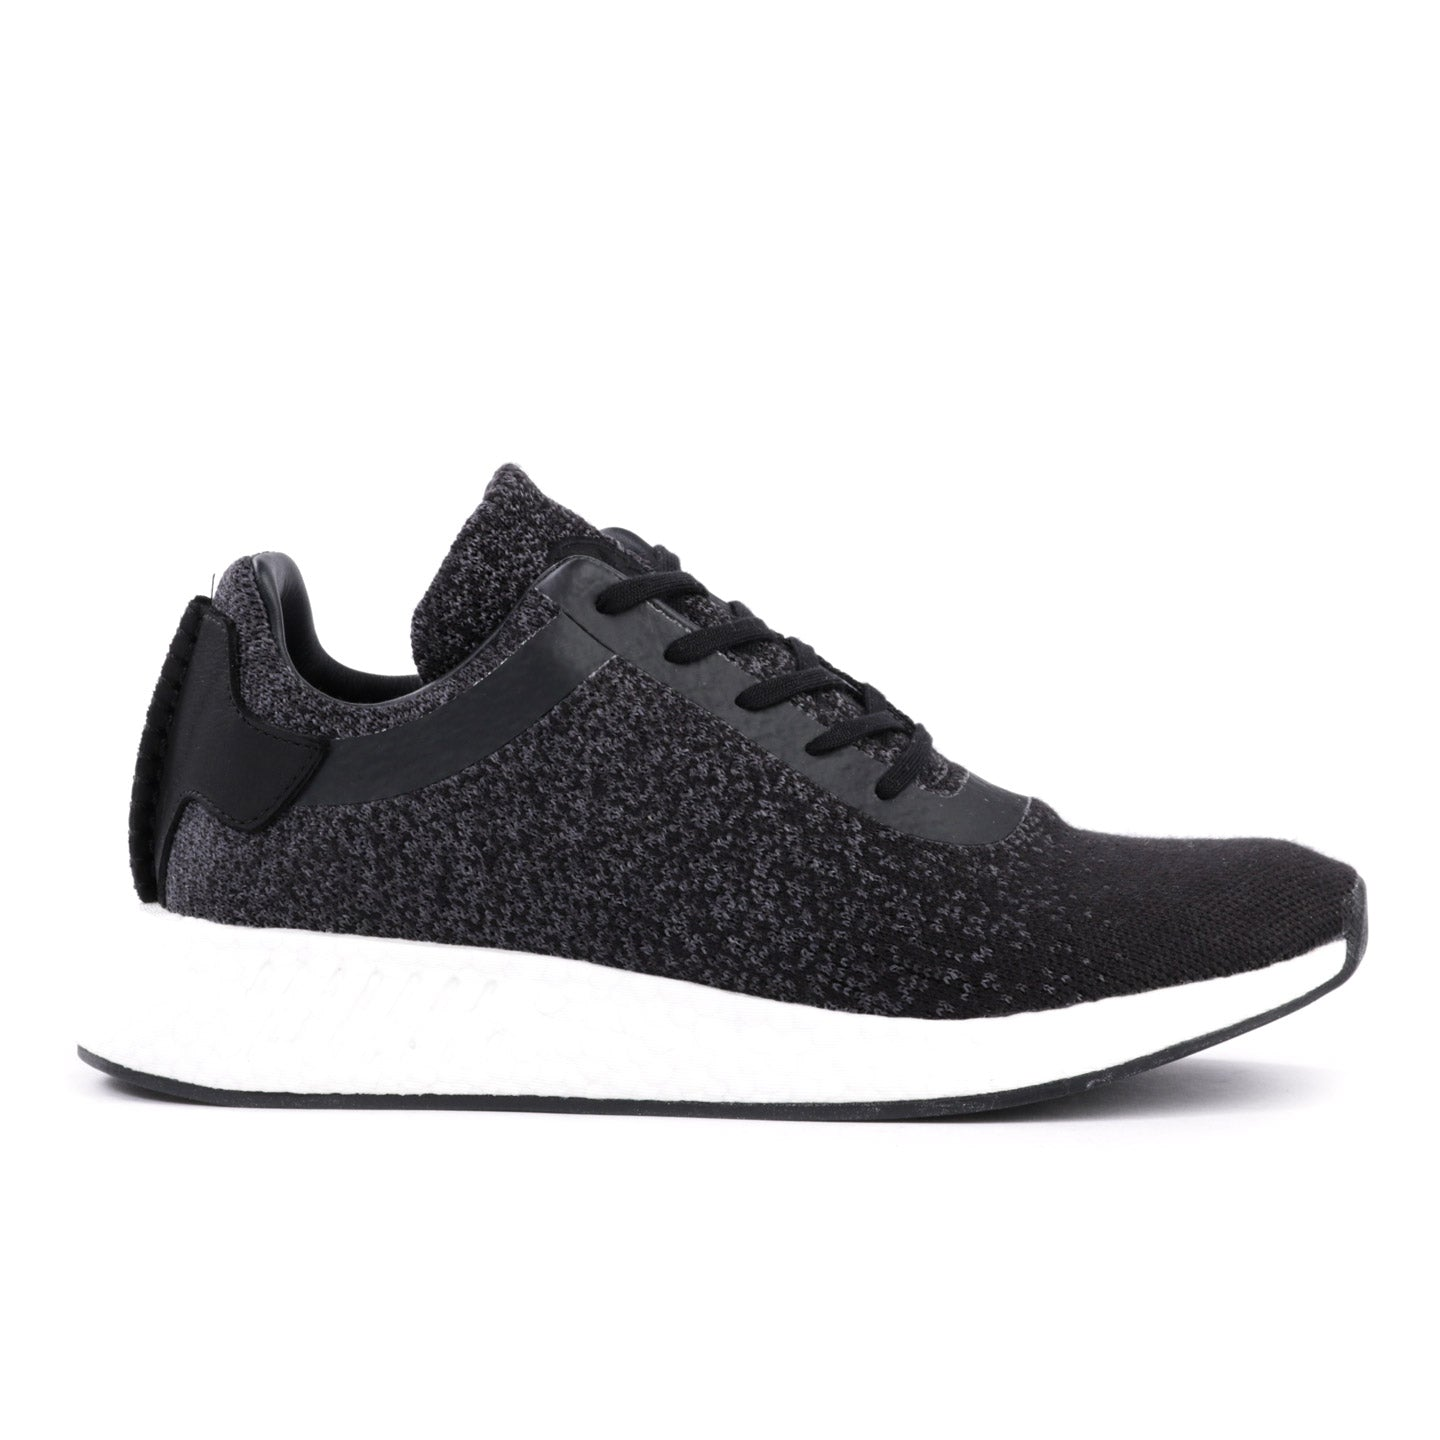 96a24e33bcf50 ADIDAS ORIGINALS BY WINGS + HORNS NMD R2 PRIME KNIT BLACK